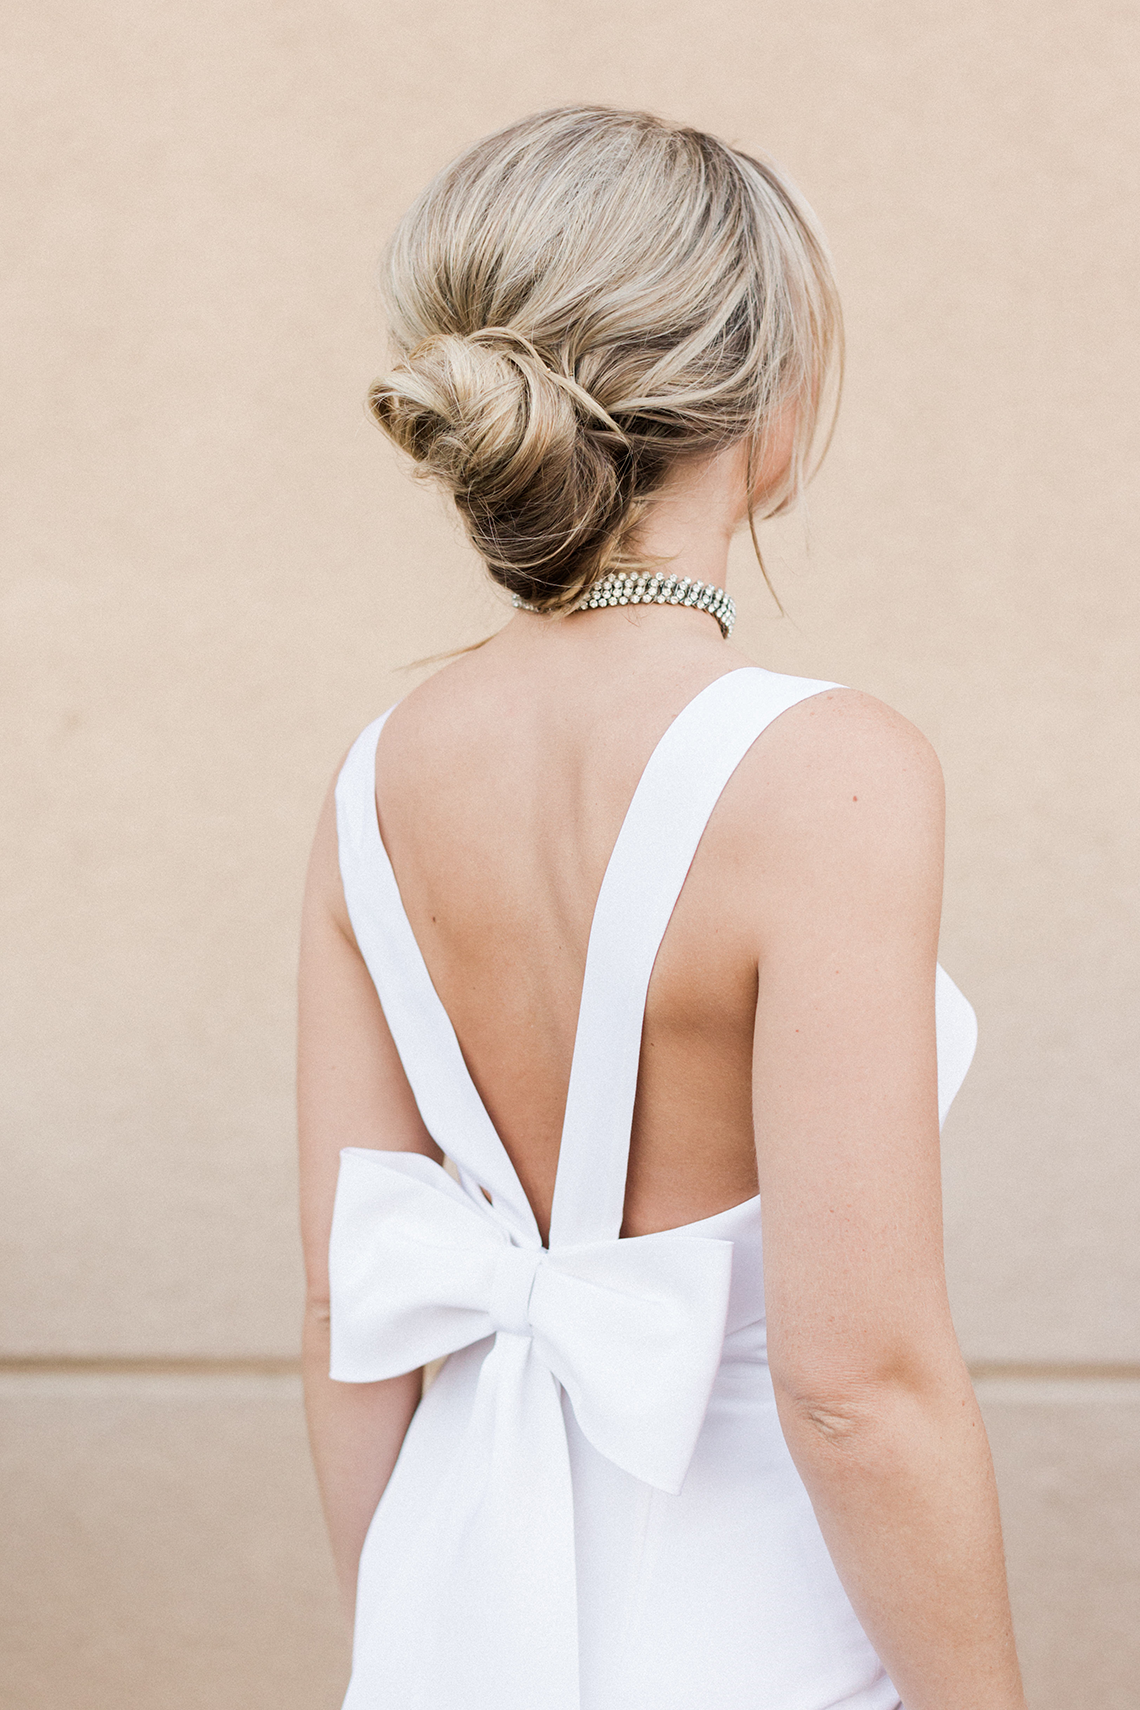 6 Gorgeous and Trendy Bridal Hairstyles for Your 2021 2022 Wedding – Valerie Darling Photography – The Bridal Bar 23